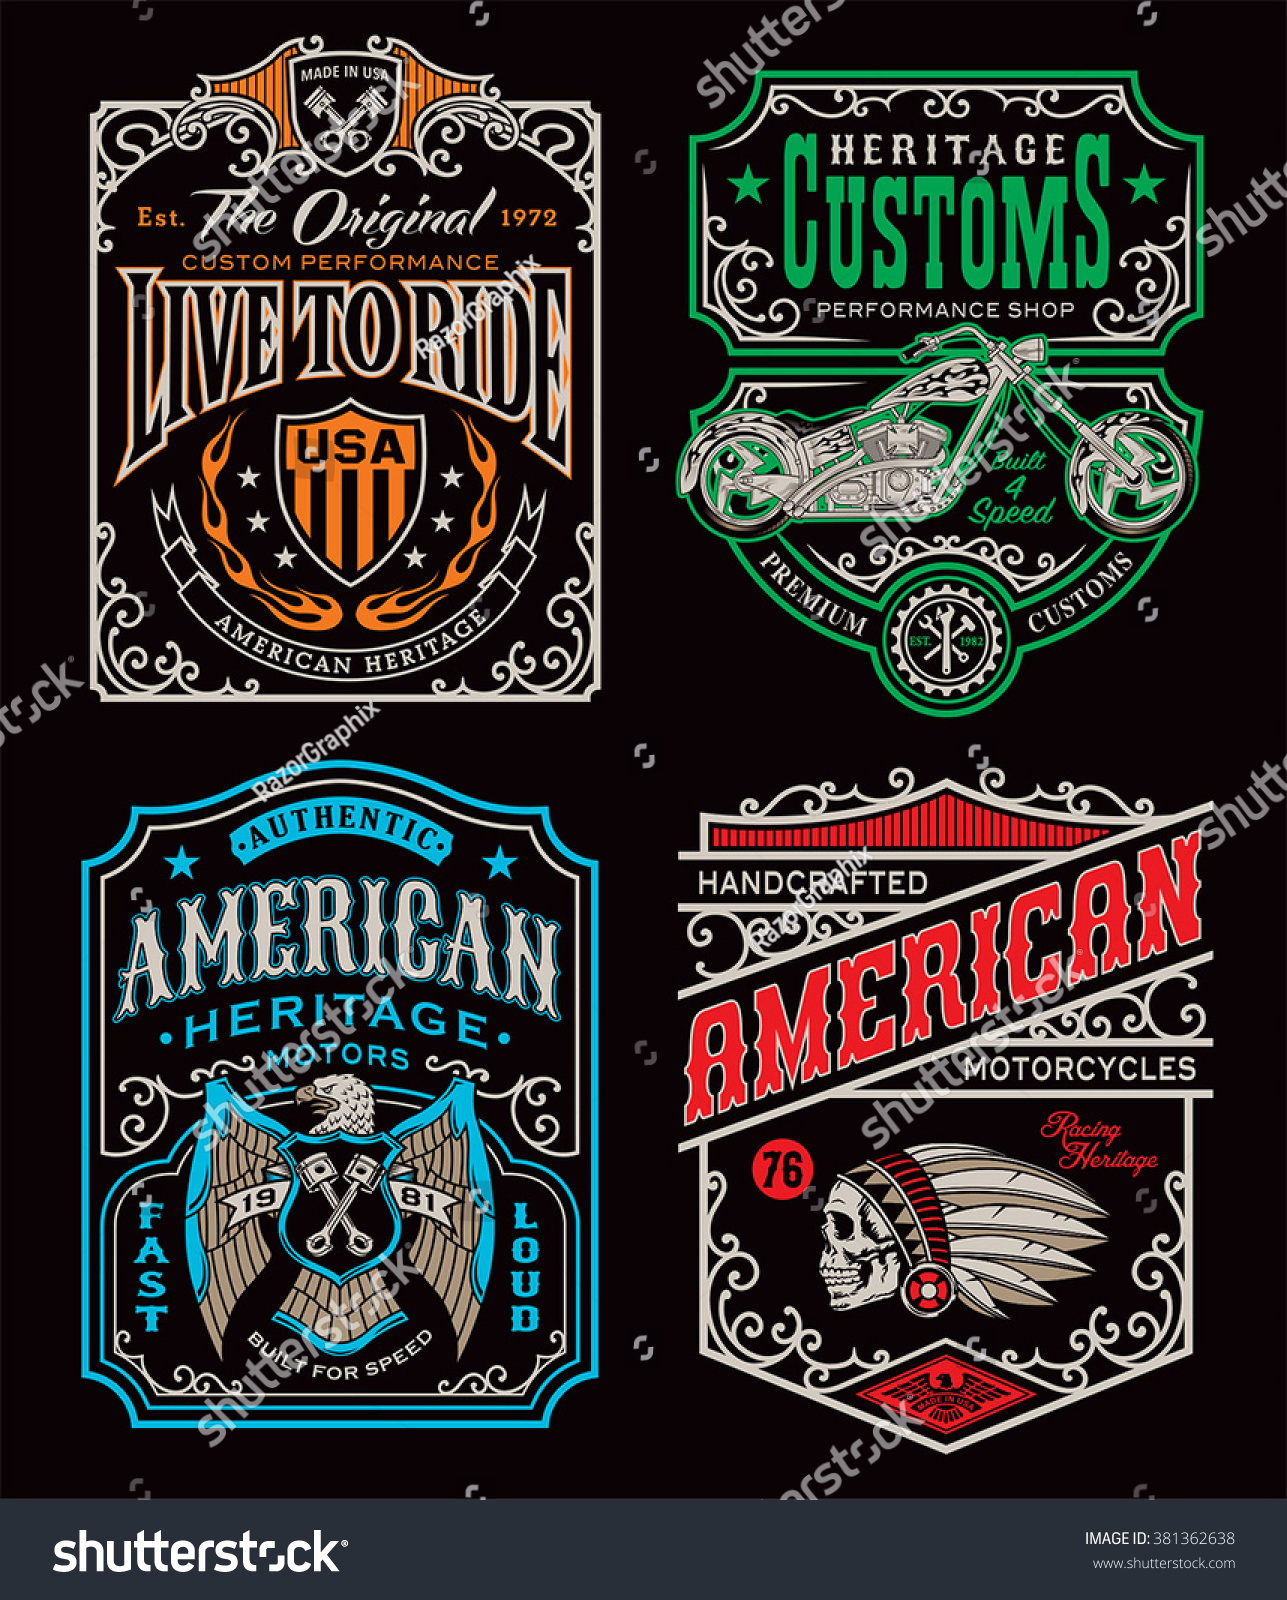 Vintage Motorcycle Tshirt Graphic Set Stock Vector